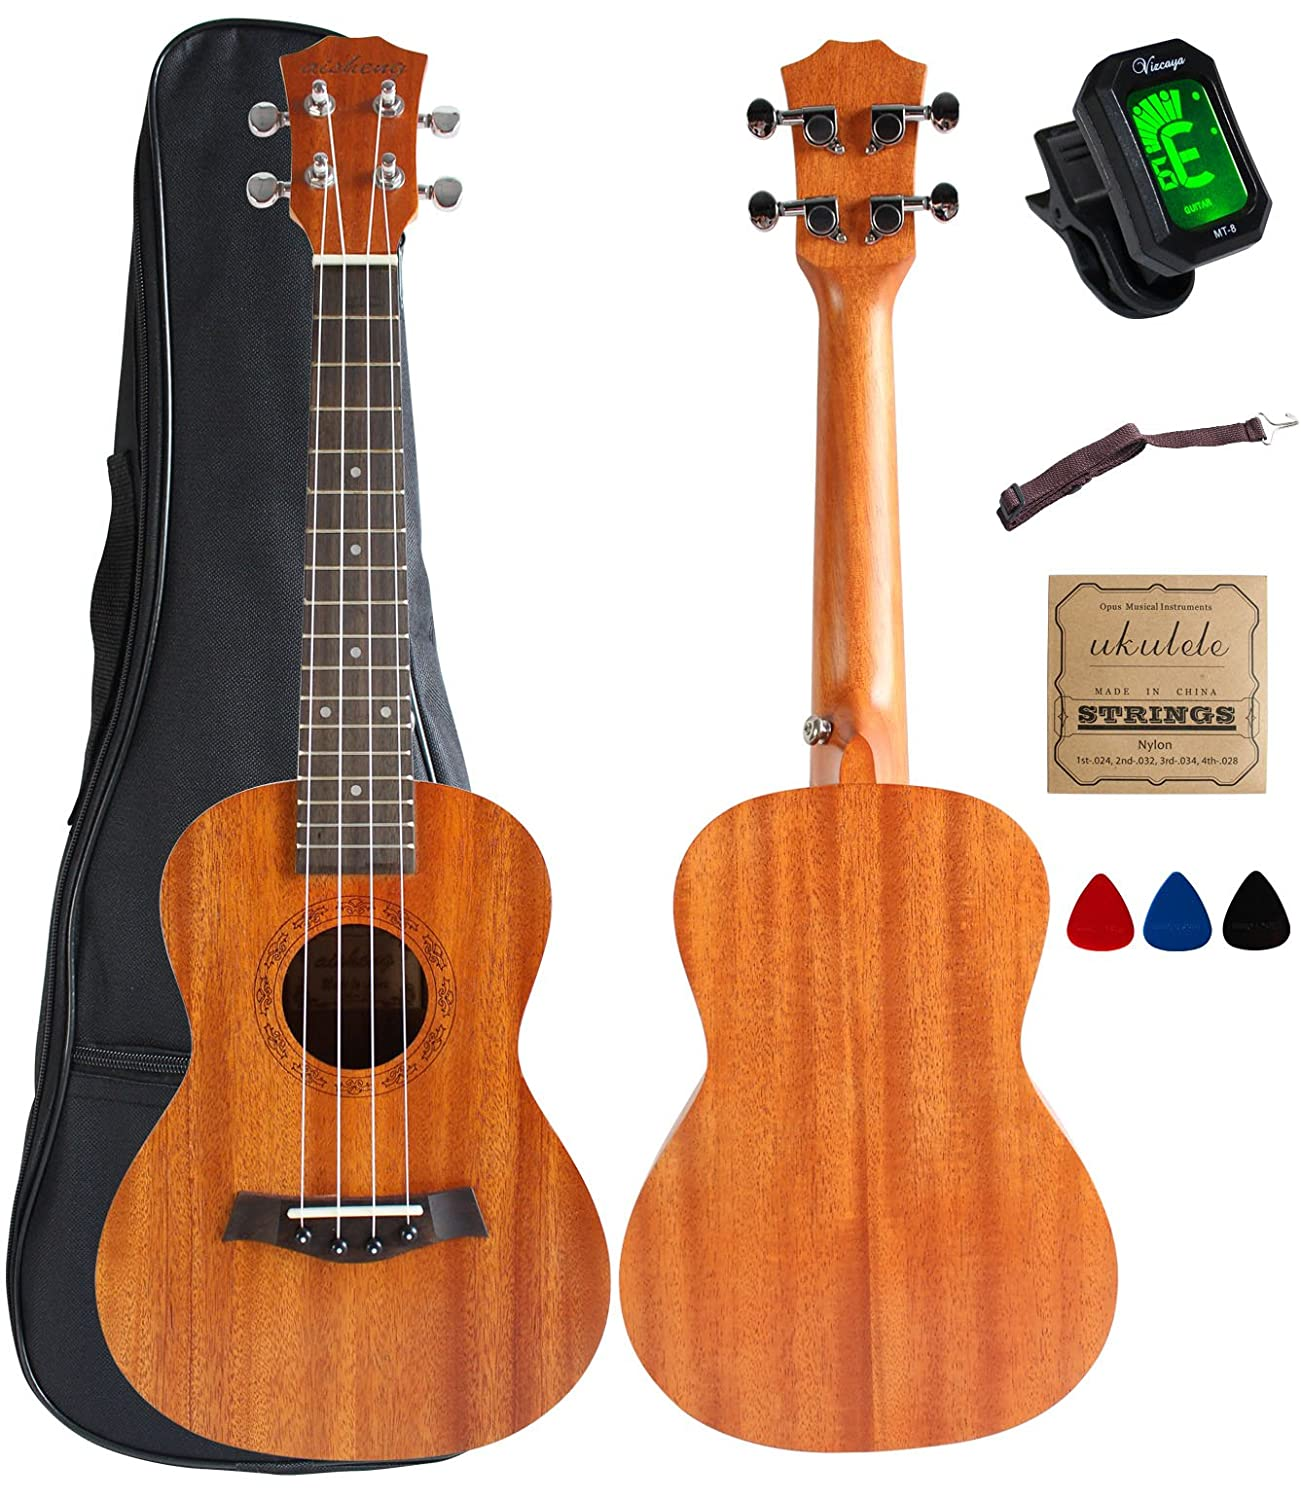 Soprano Ukulele Mahogany 21 inch stain finish with Ukulele Accessories, 5mm Sponge Padding Gig Bag, Strap, Nylon String, Electric Tuner, Picks Hua Sheng UK21S-AKT-MA